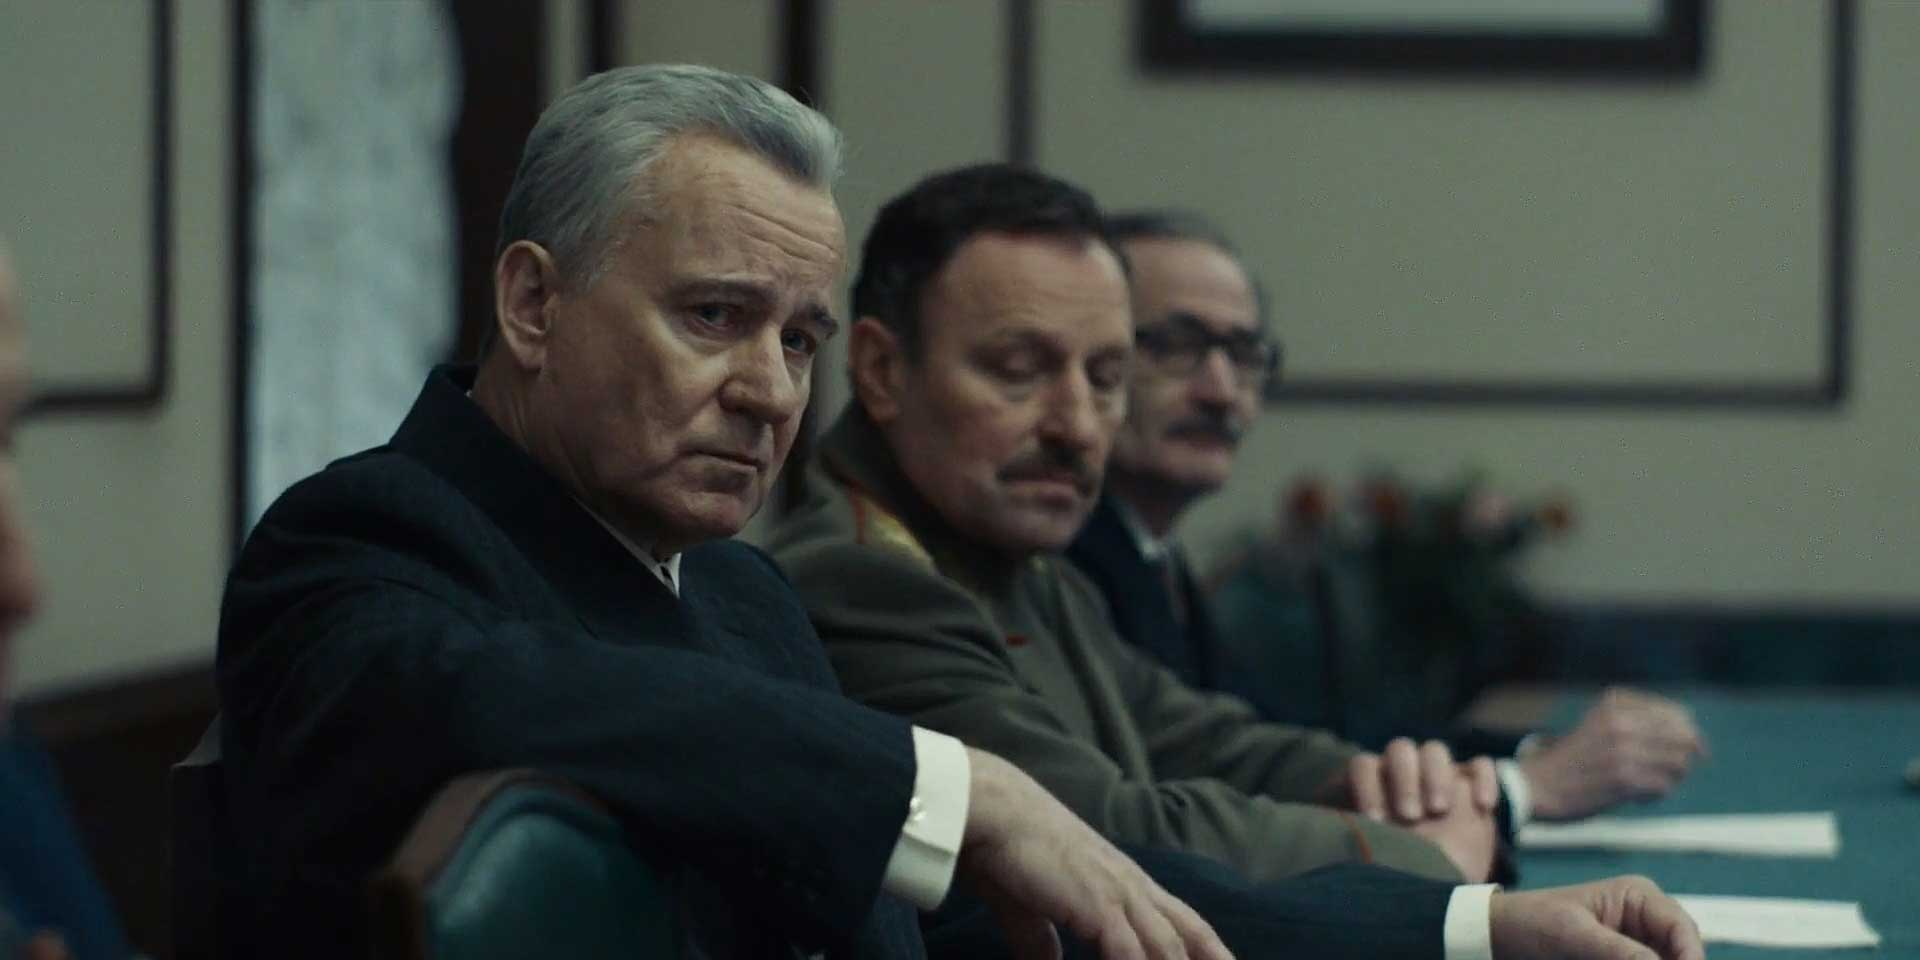 HBO Chernobyl Episode 2 Please Remain Calm Boris Scherbina Stellan Skarsgard